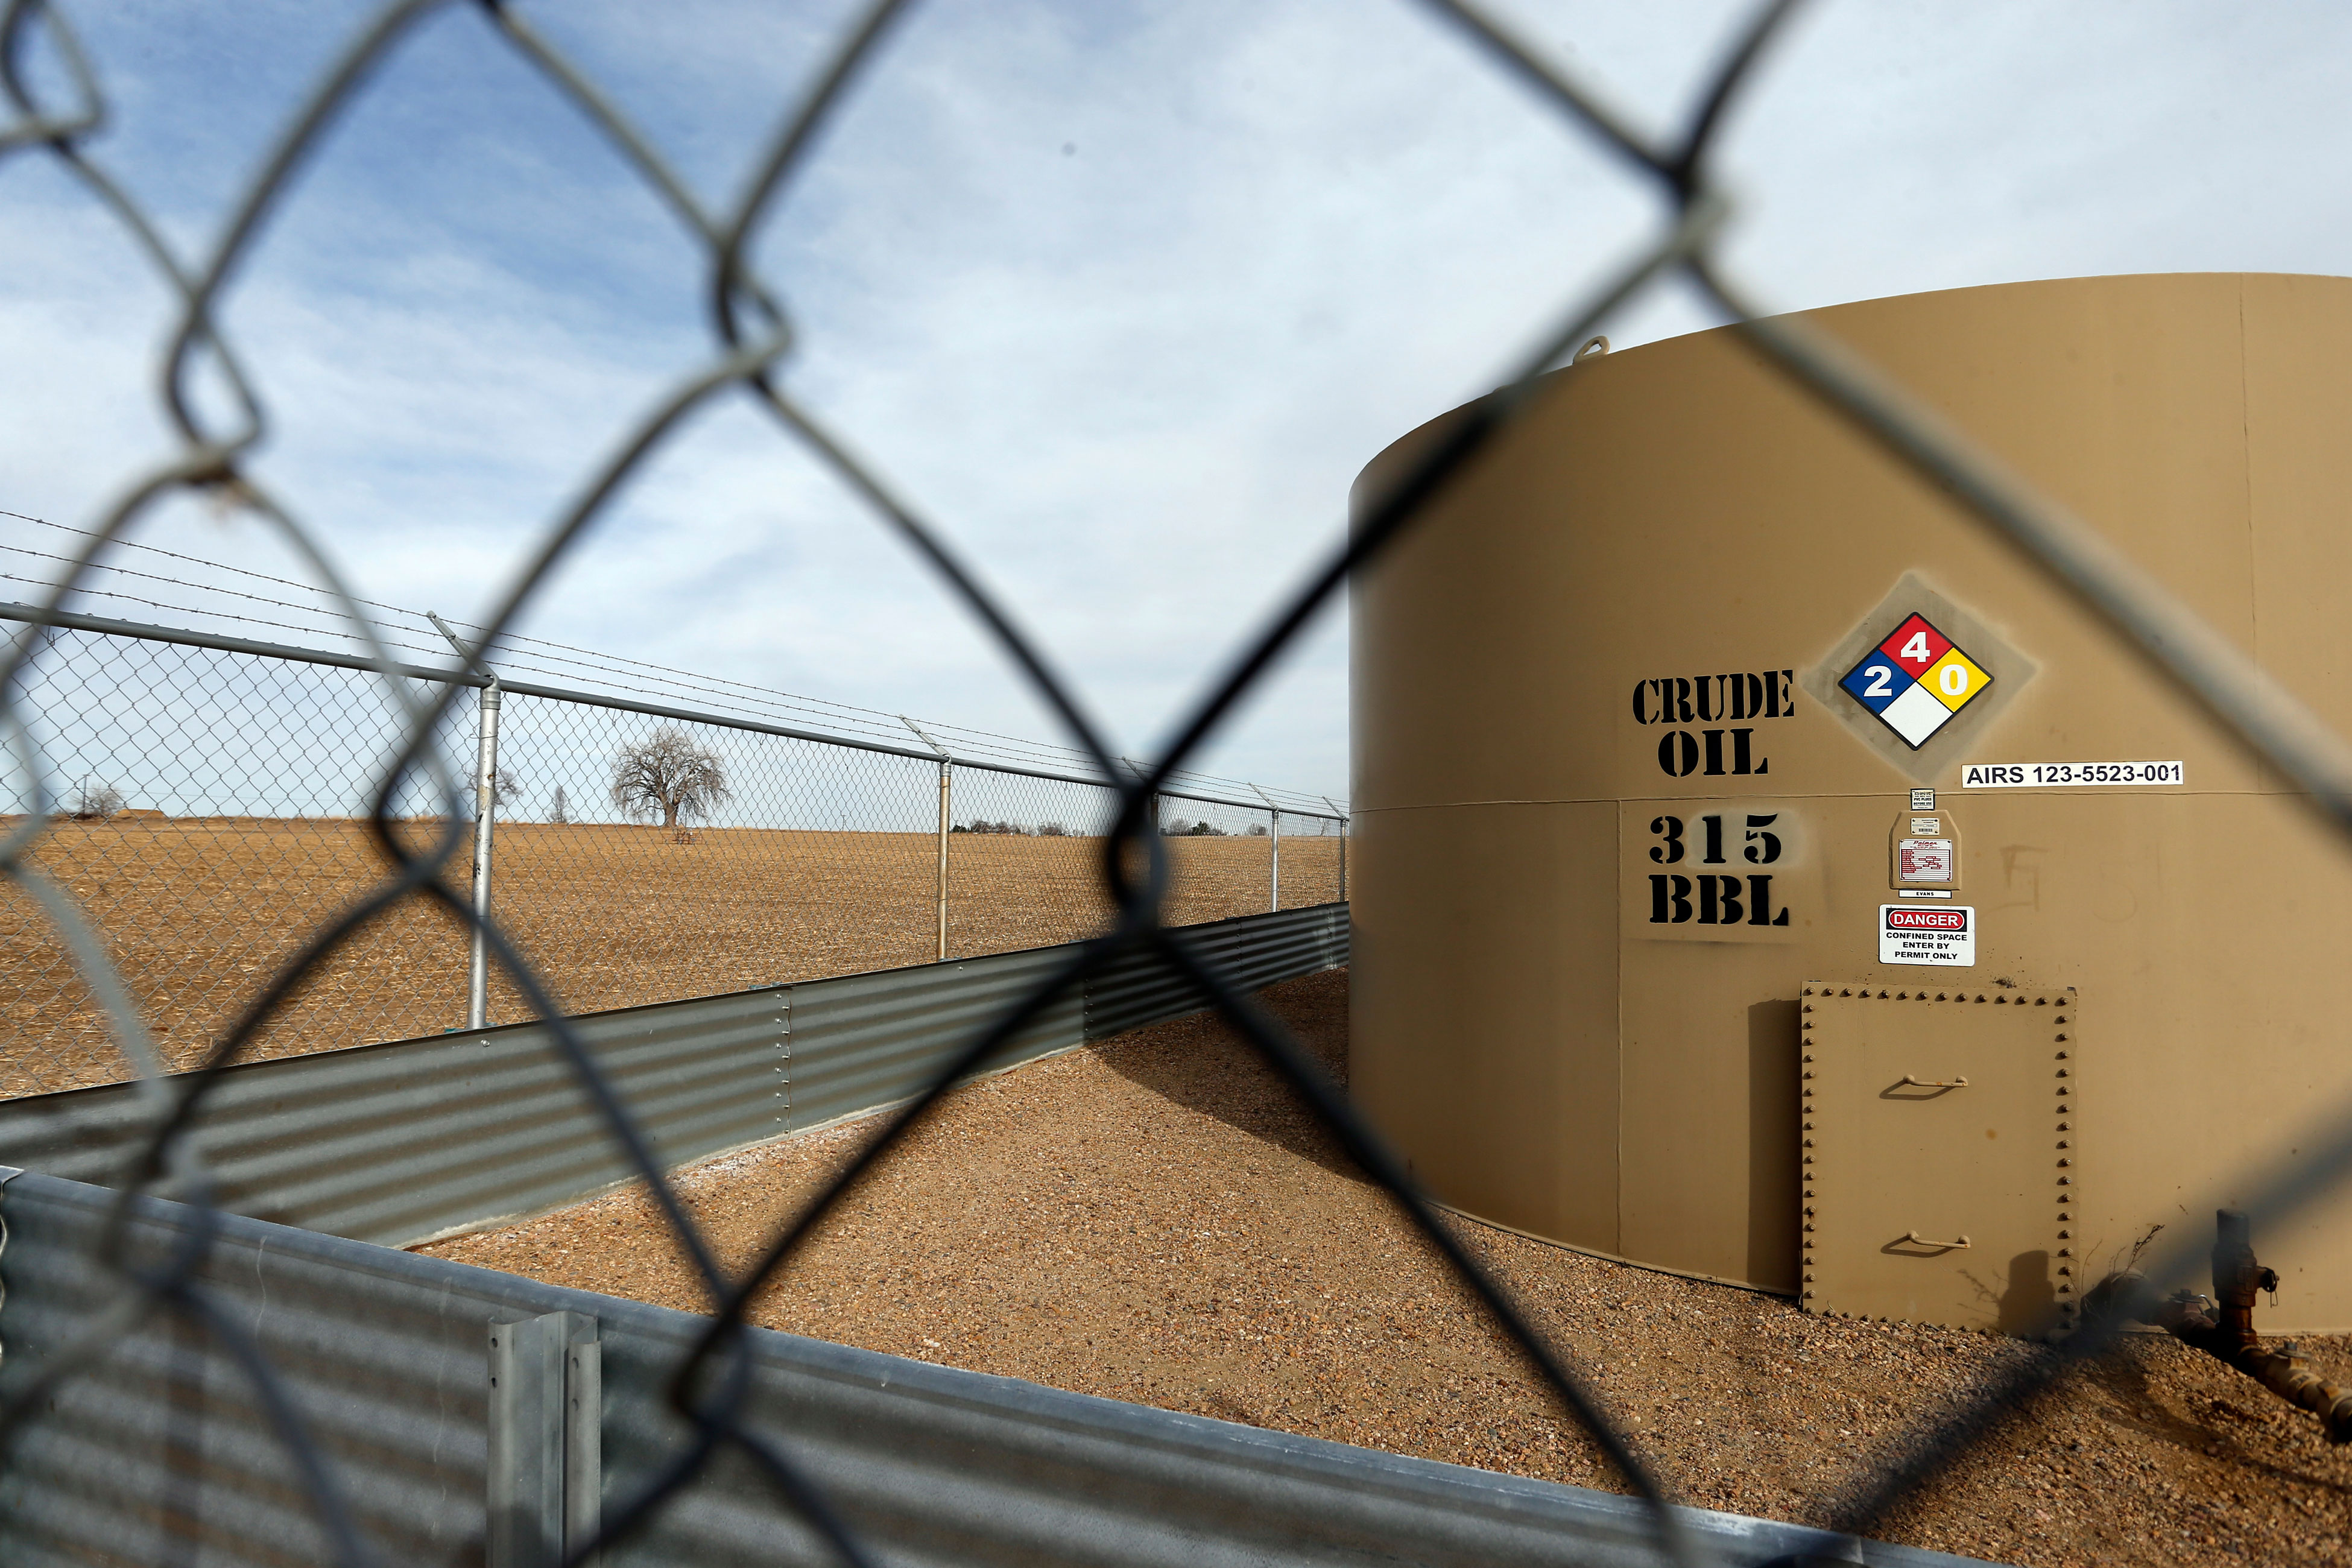 A crude oil storage tank sits behind a fence at a petroleum extraction site, in Weld County, near Mead, Colo., Monday, Feb. 13, 2017.